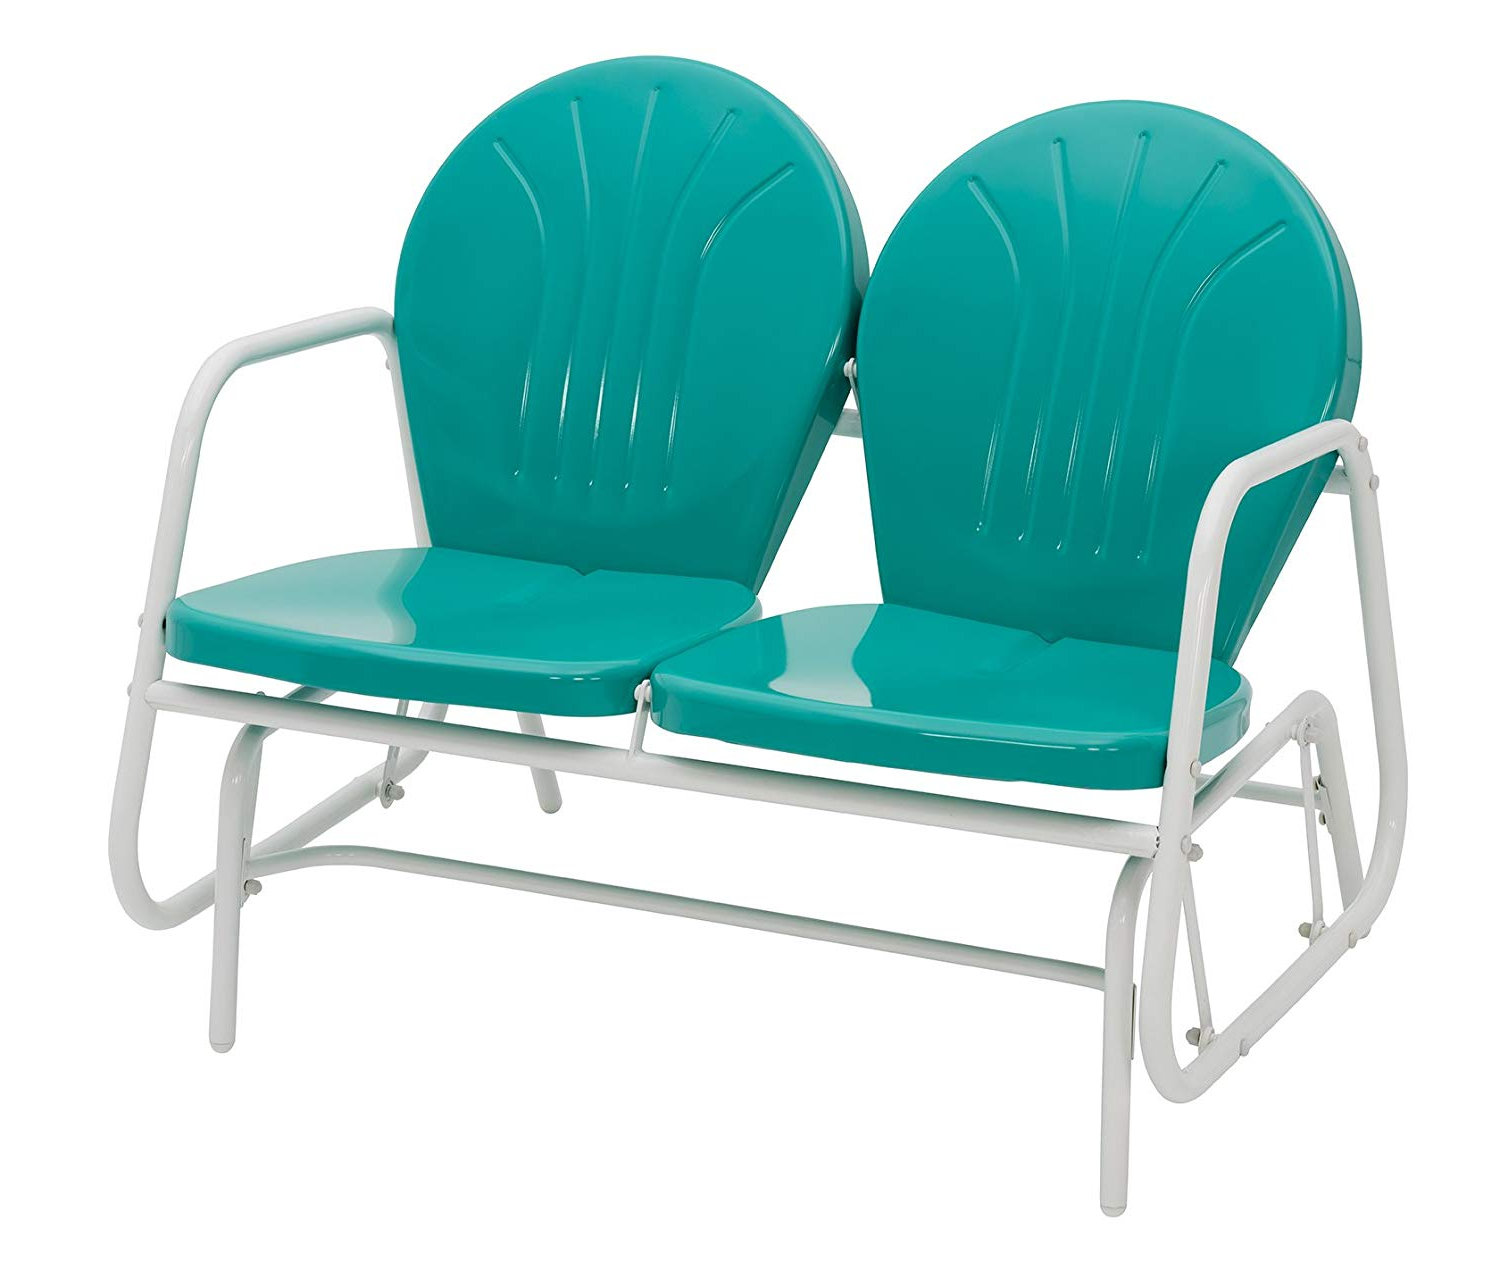 Jack Post Bh 10em Porch Glider,turquoise Throughout 2019 Metal Retro Glider Benches (Gallery 11 of 30)